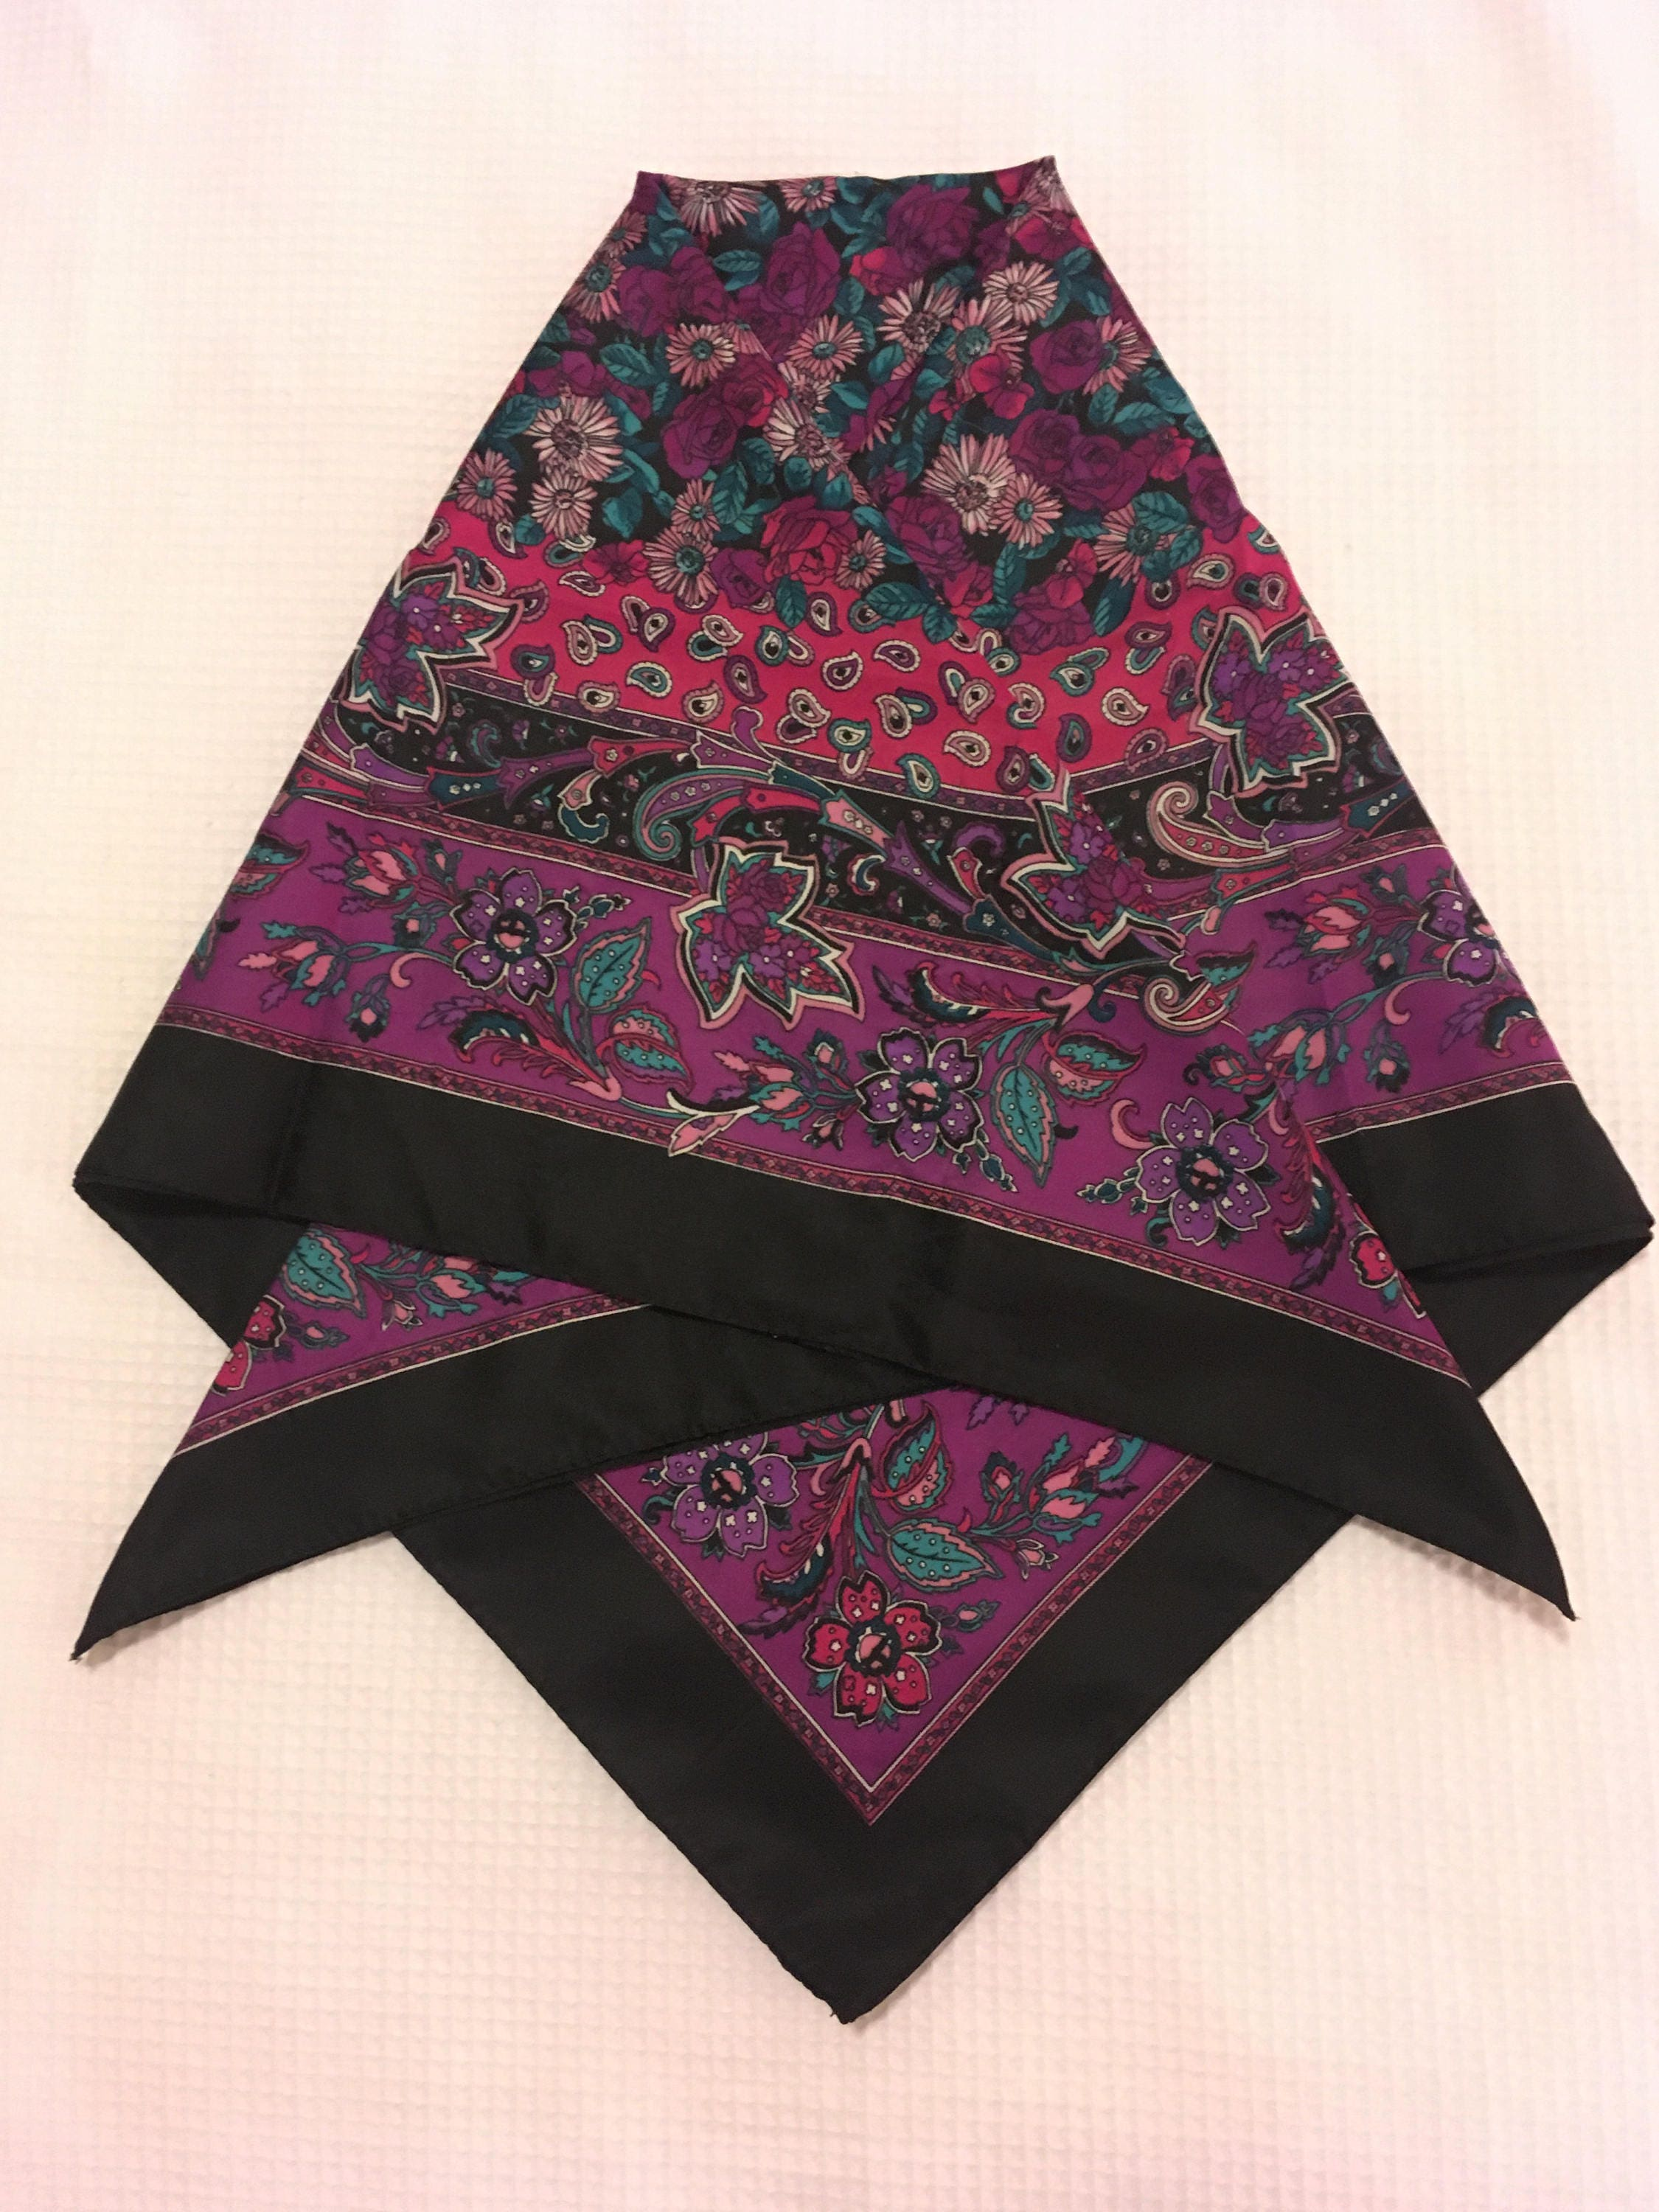 Vintage London scarf in purple and black with paisley pattern, Tie ...